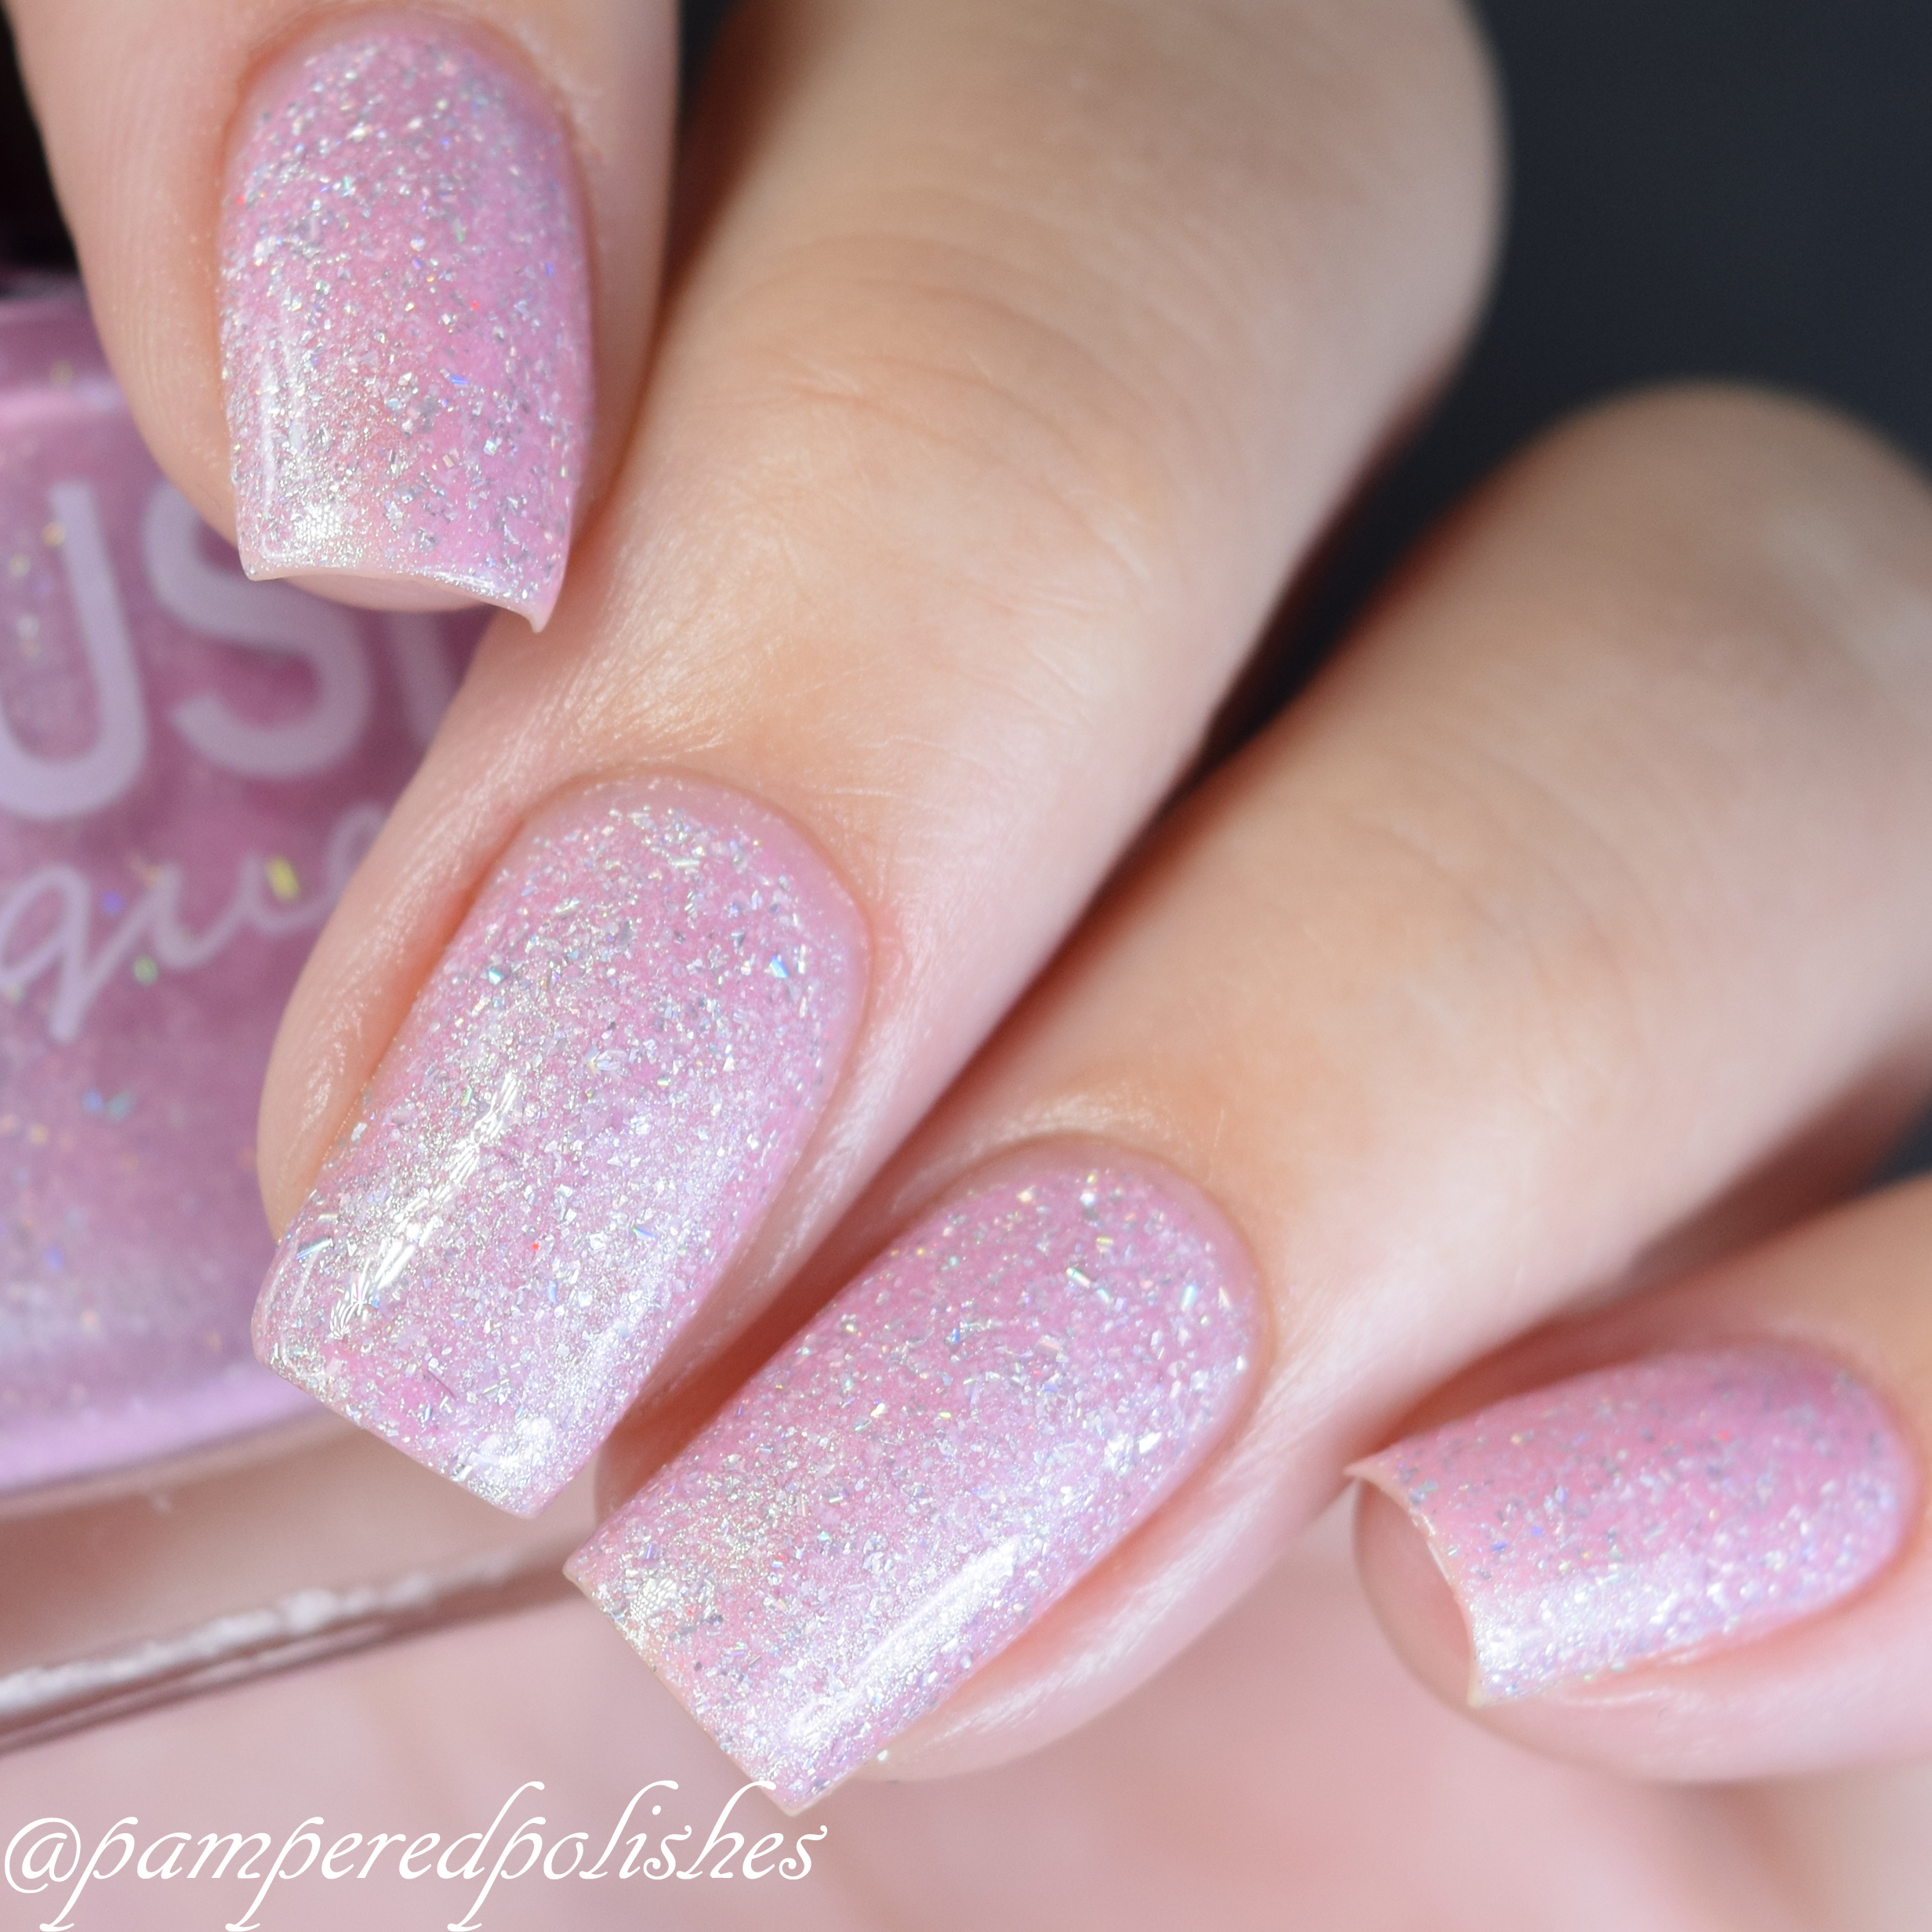 morning-glow-by-blush-lacquers-available-at-girly-bits-cosmetics-pamperedpolishes-2-.jpg